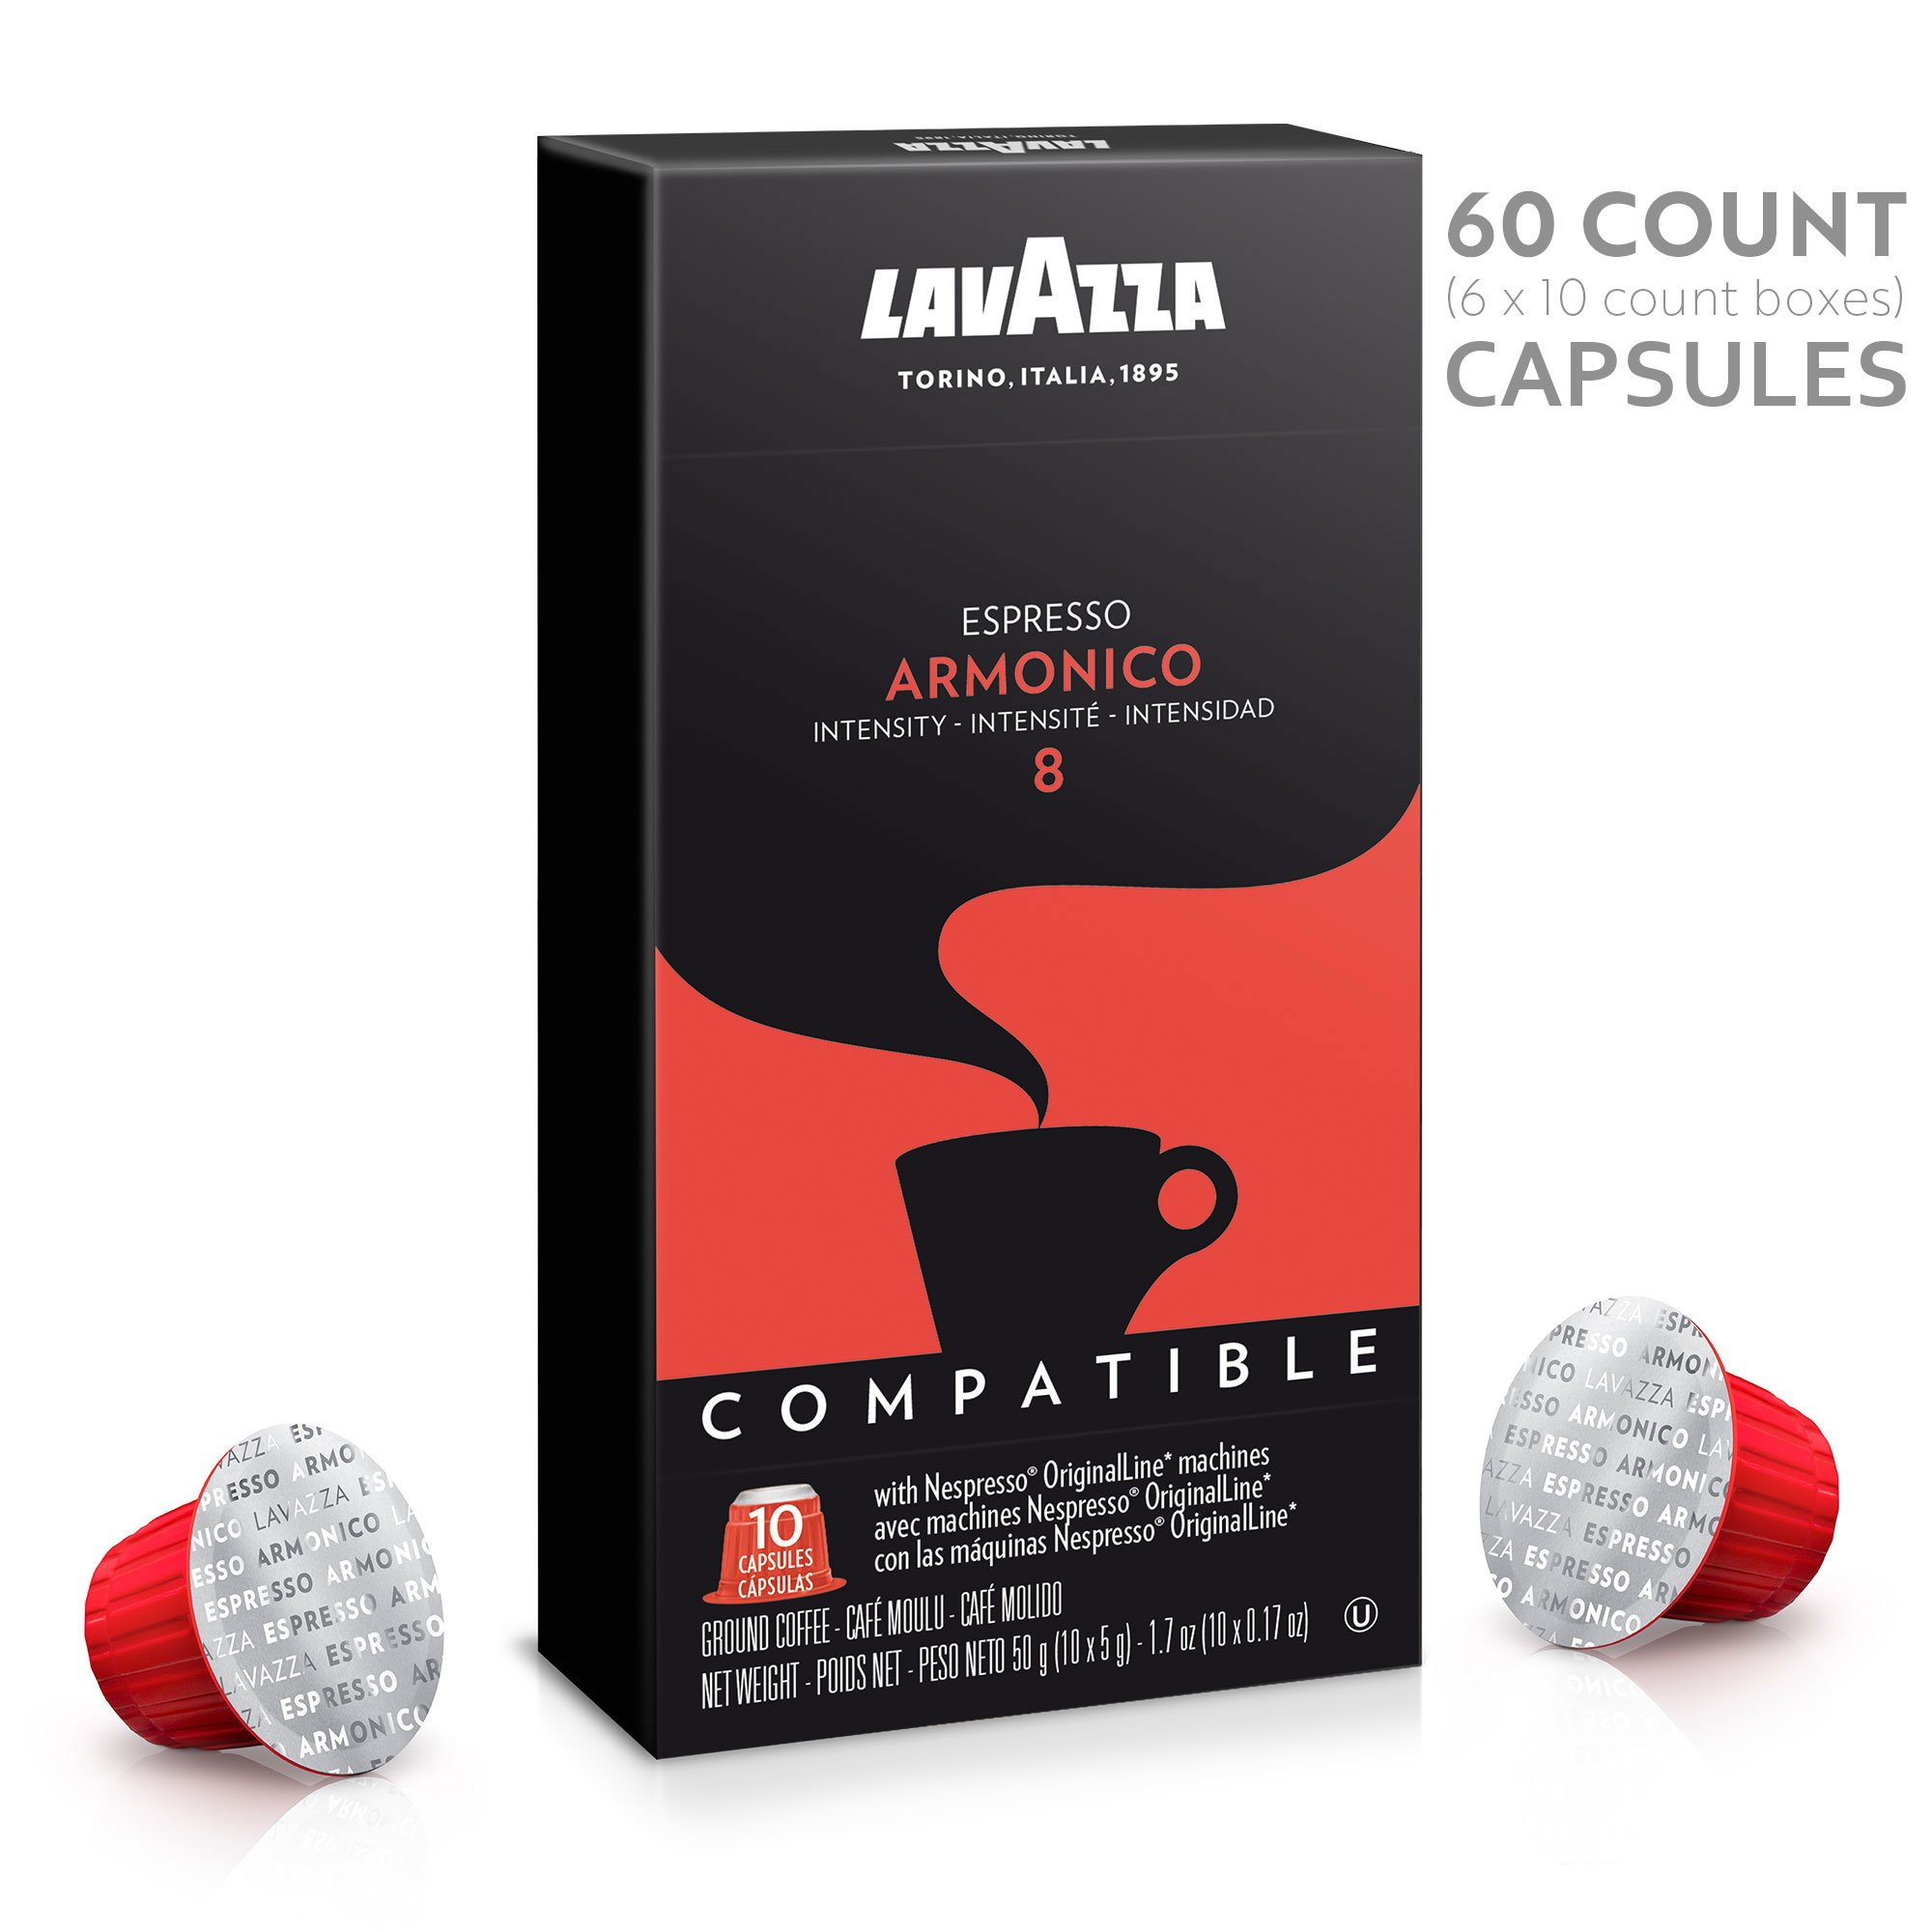 Lavazza Nespresso Compatible Capsules, Armonico Espresso Dark Roast Coffee (Pack of 60)